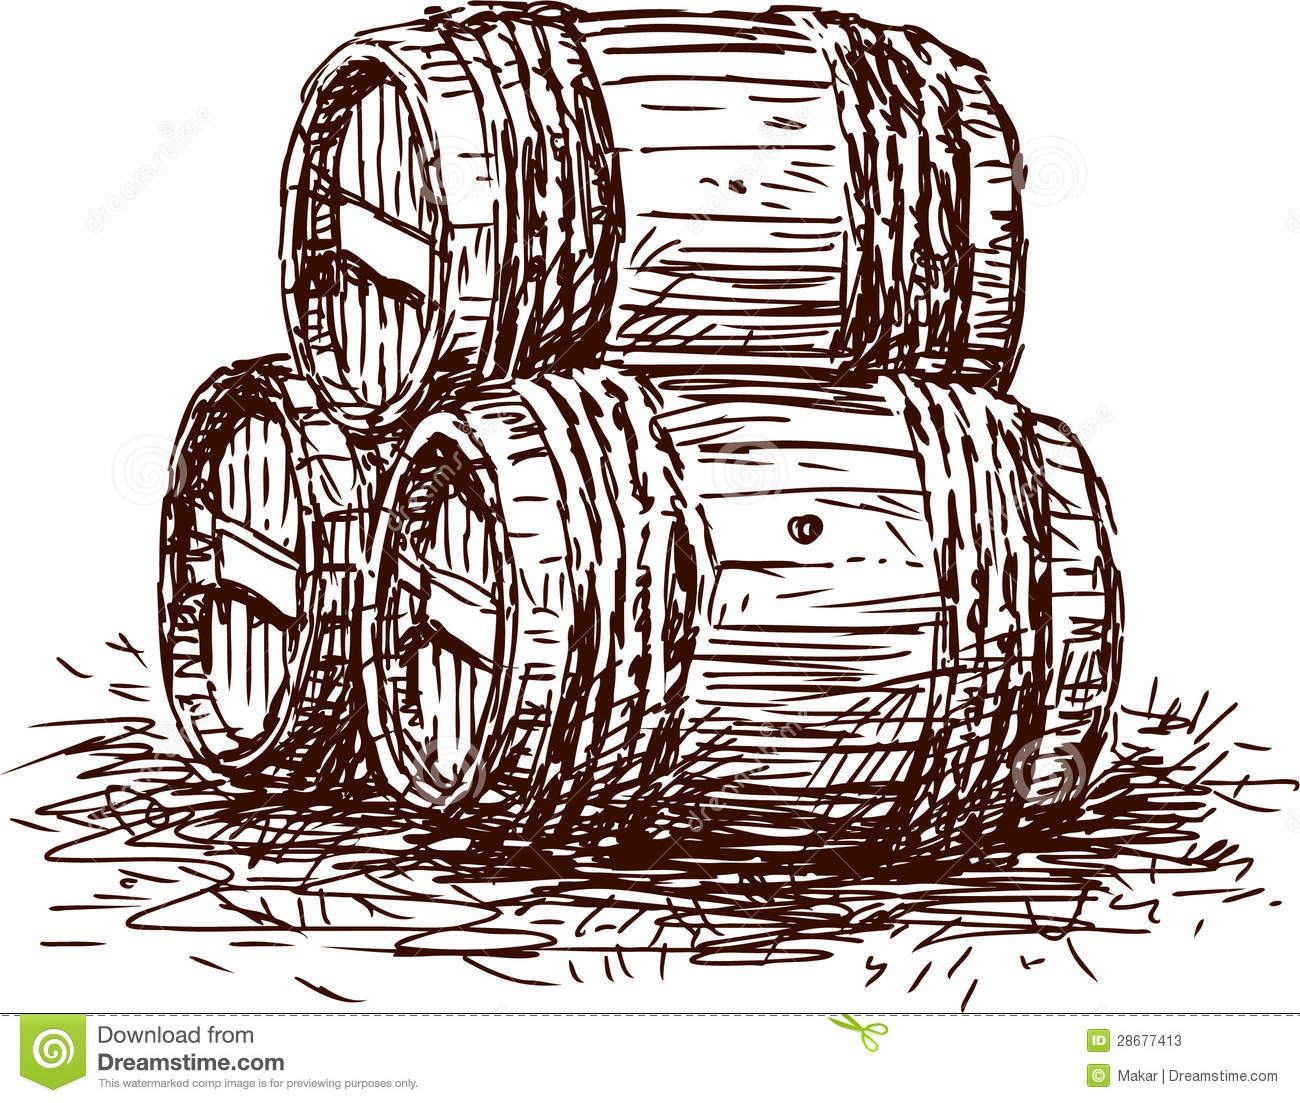 Three barrels stock photos image 28677413 - Barriles de vino ...